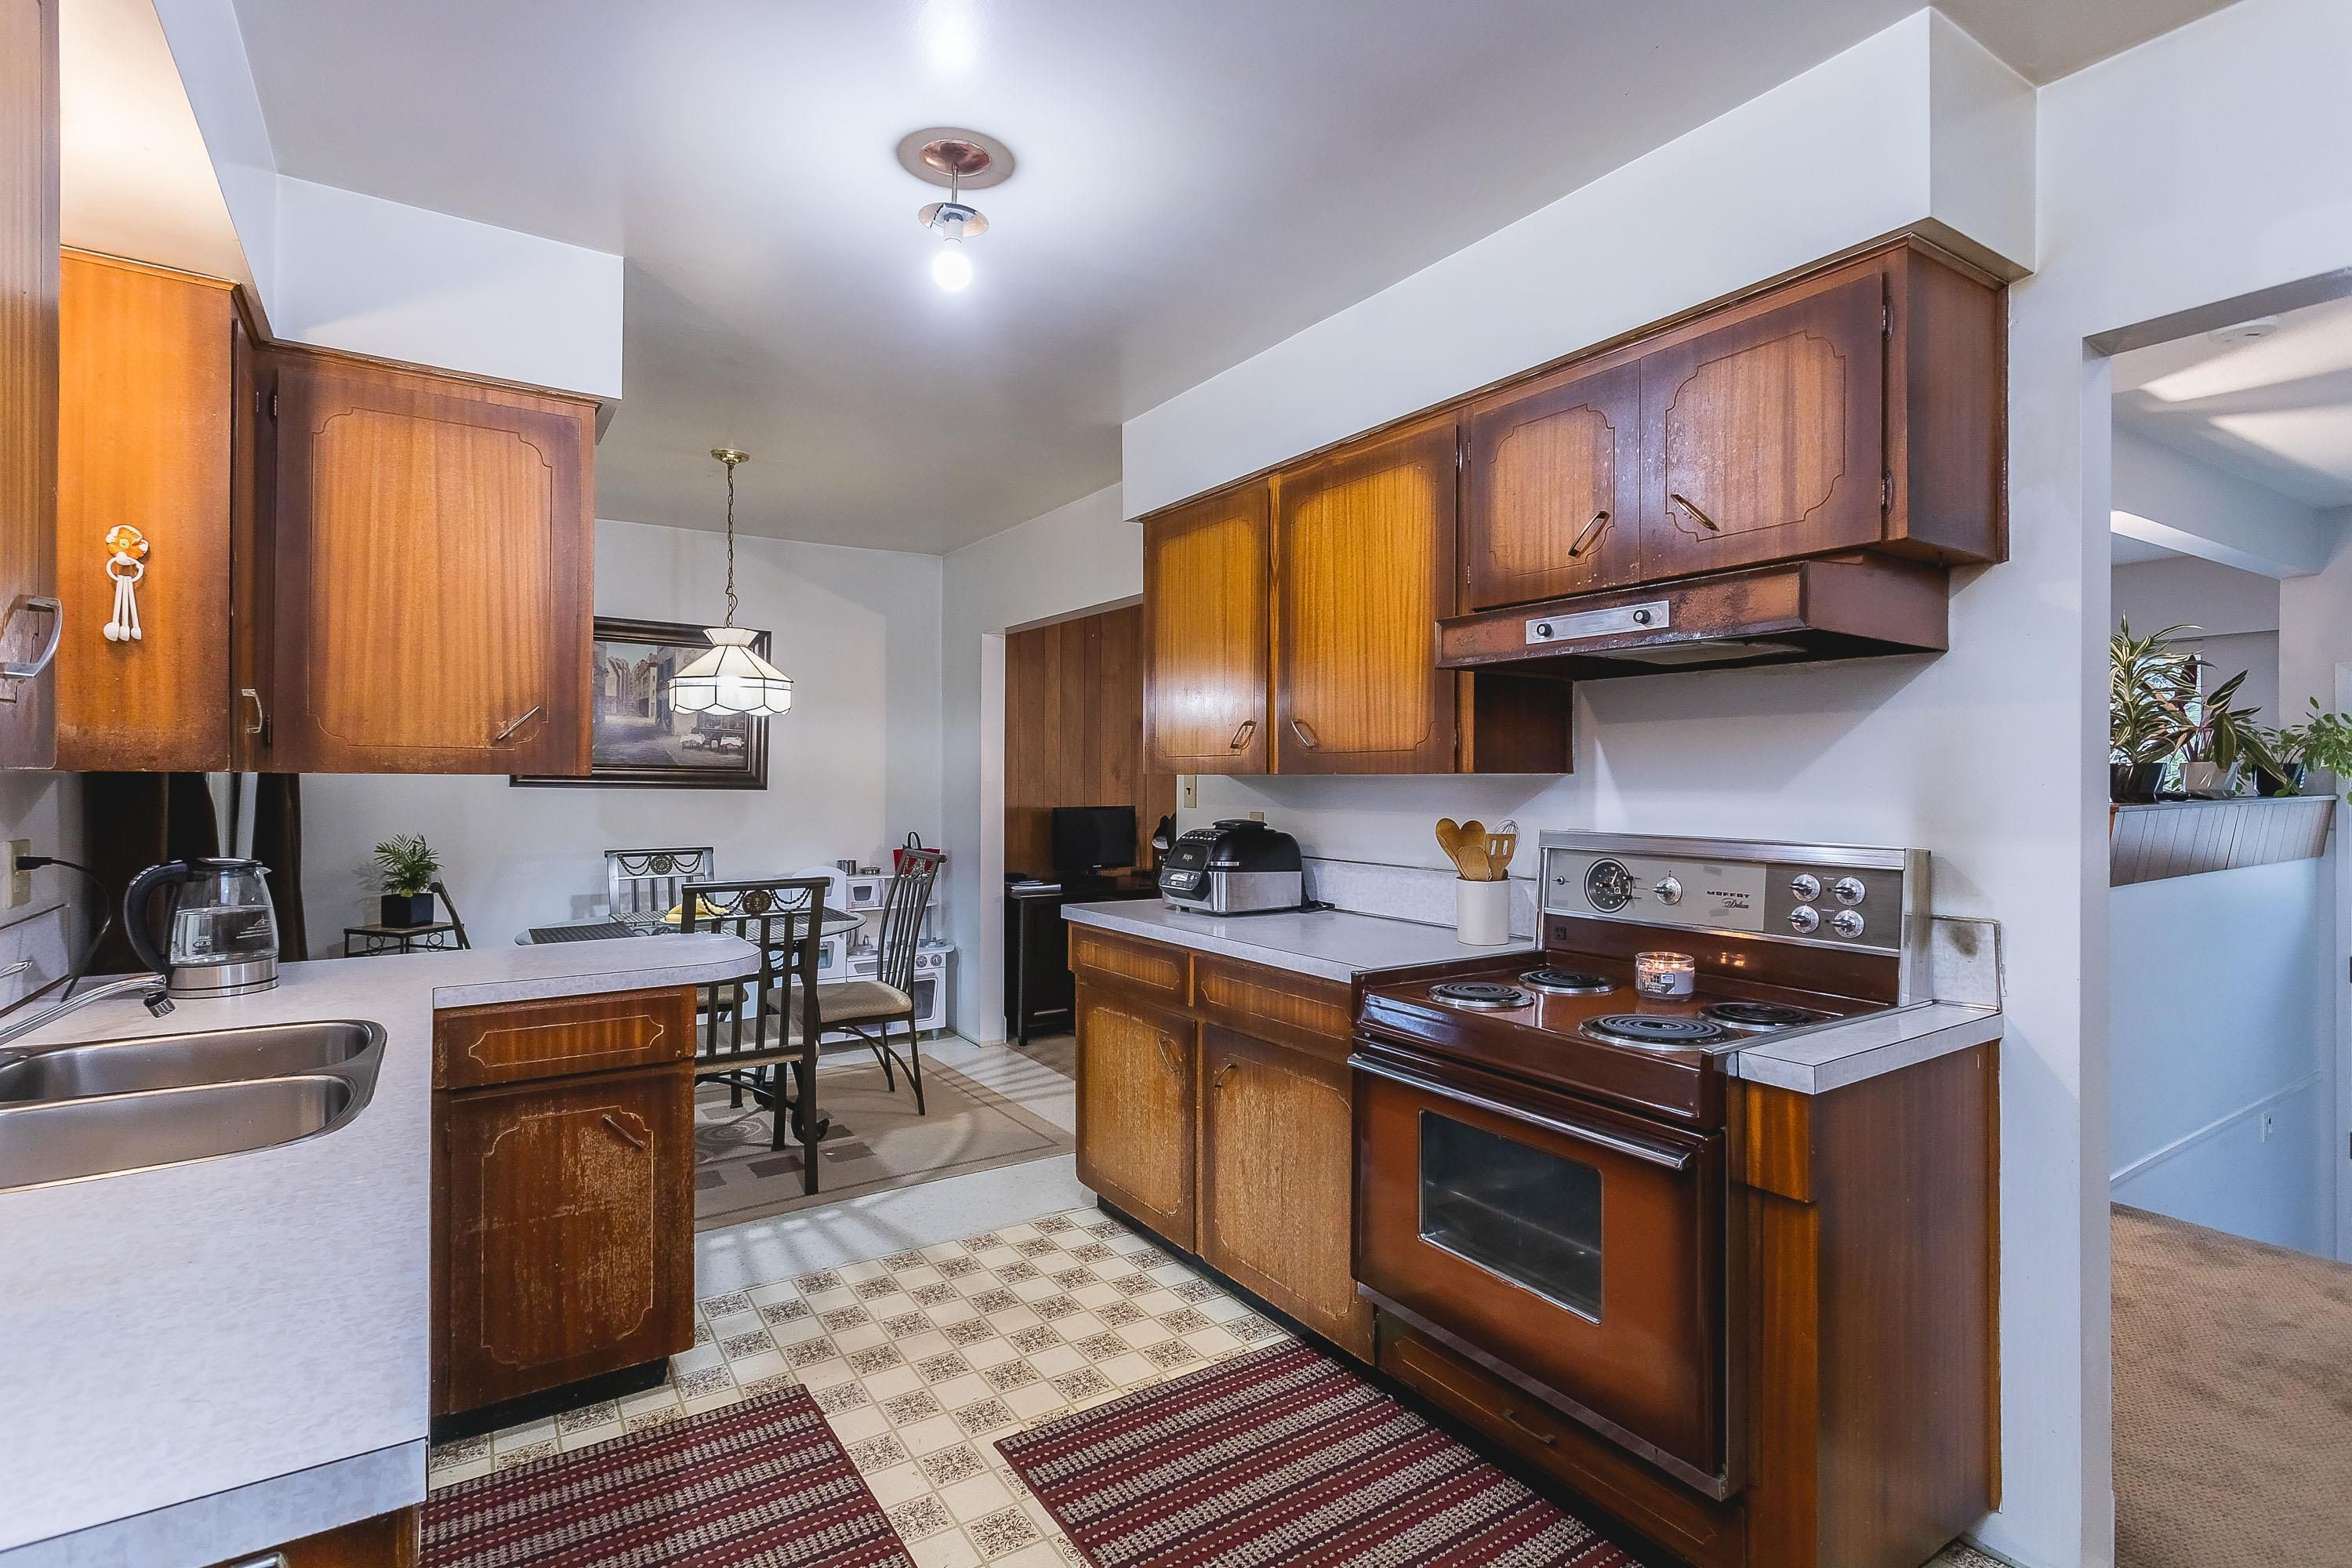 Photo 11: Photos: 3260 ULSTER Street in Port Coquitlam: Lincoln Park PQ House for sale : MLS®# R2613283